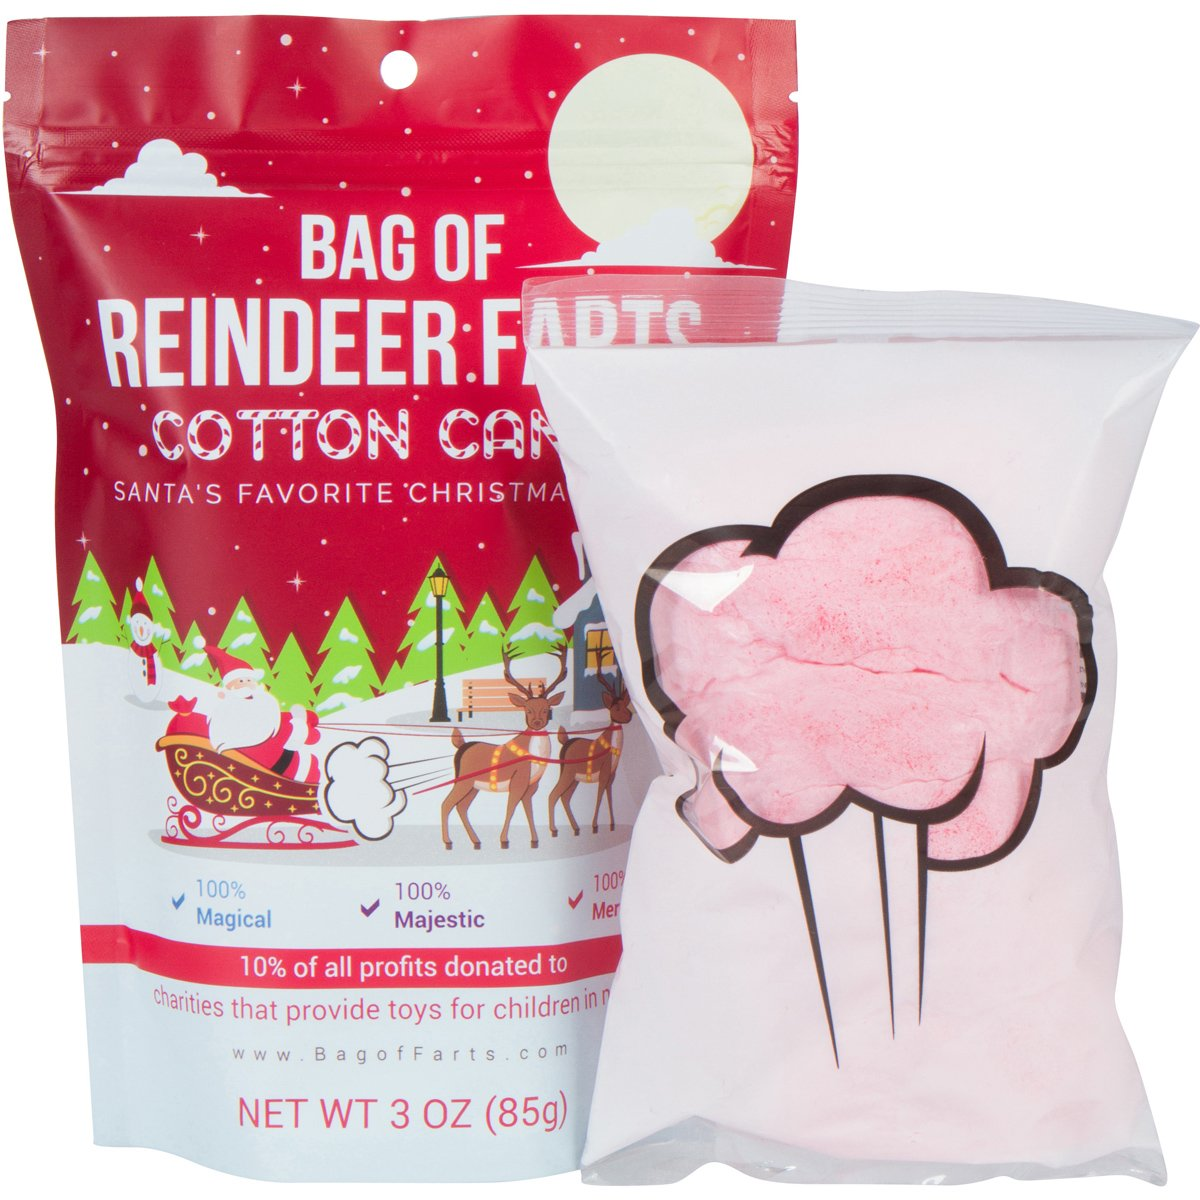 Bag of Reindeer Farts Cotton Candy Funny Unique Present Stocking Stuffer White Elephant